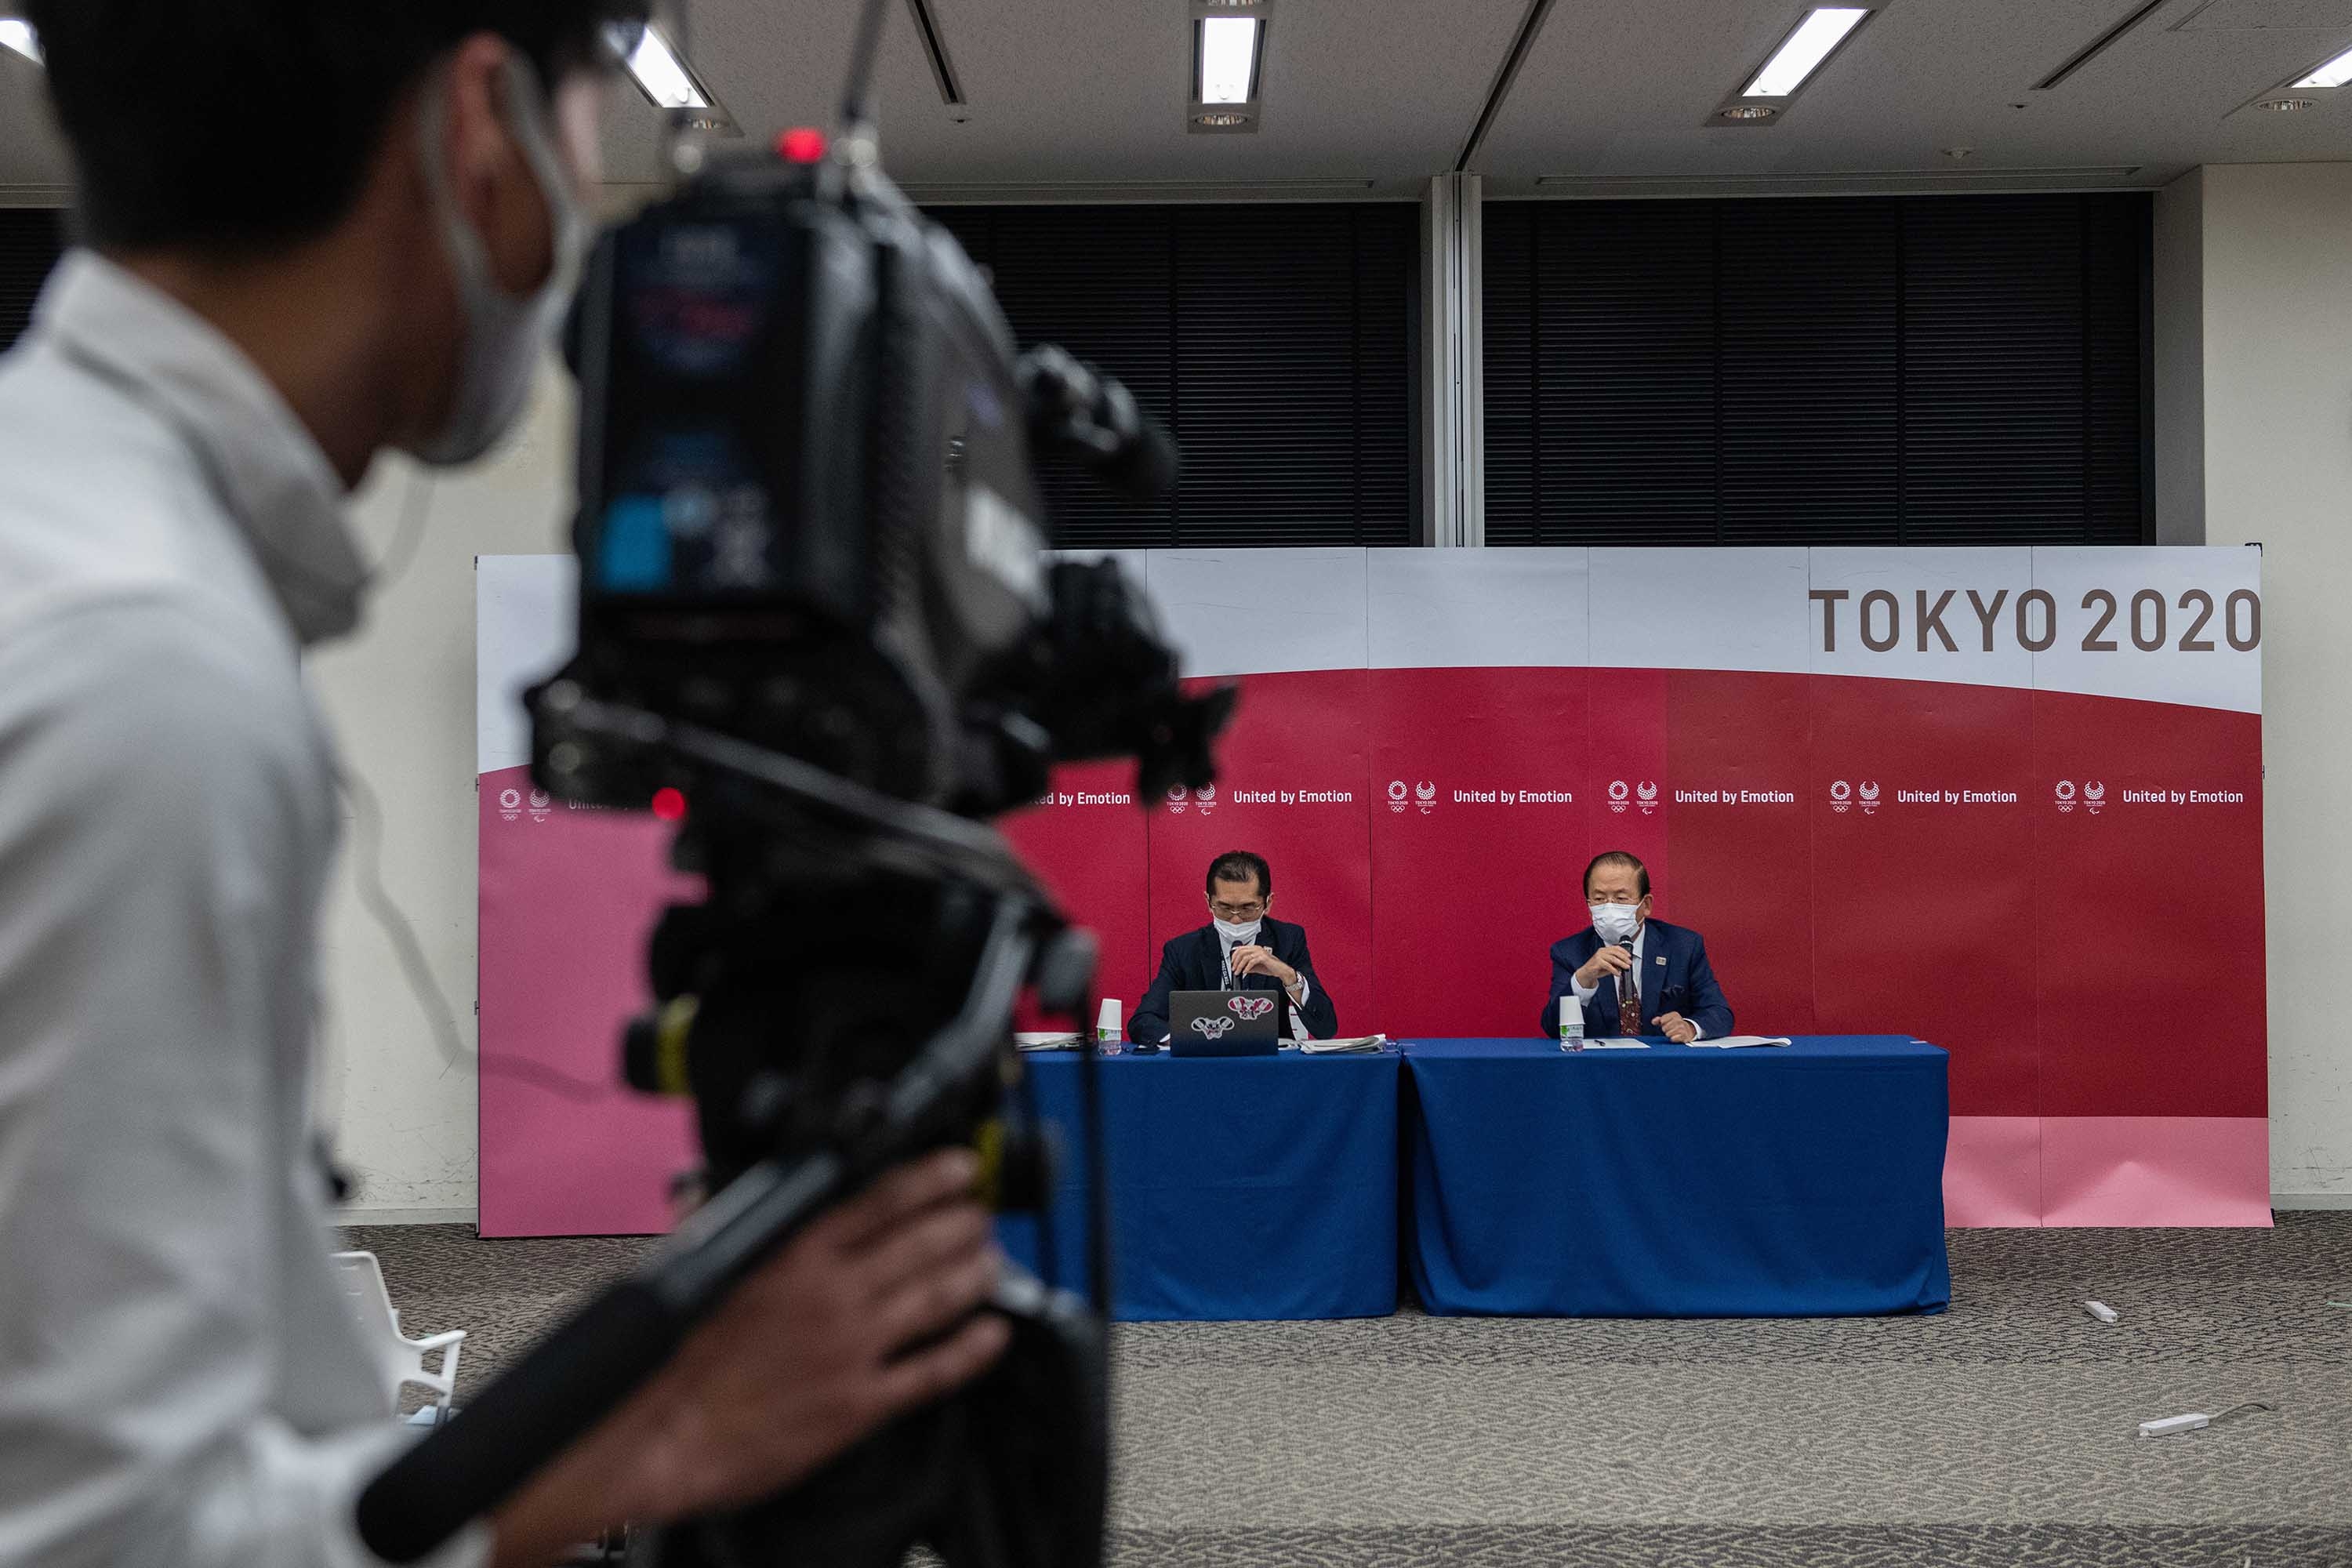 A camera person records as Toshiro Muto, Tokyo 2020 Olympic Games CEO, right, speaks during a press conference in Tokyo on December 22.